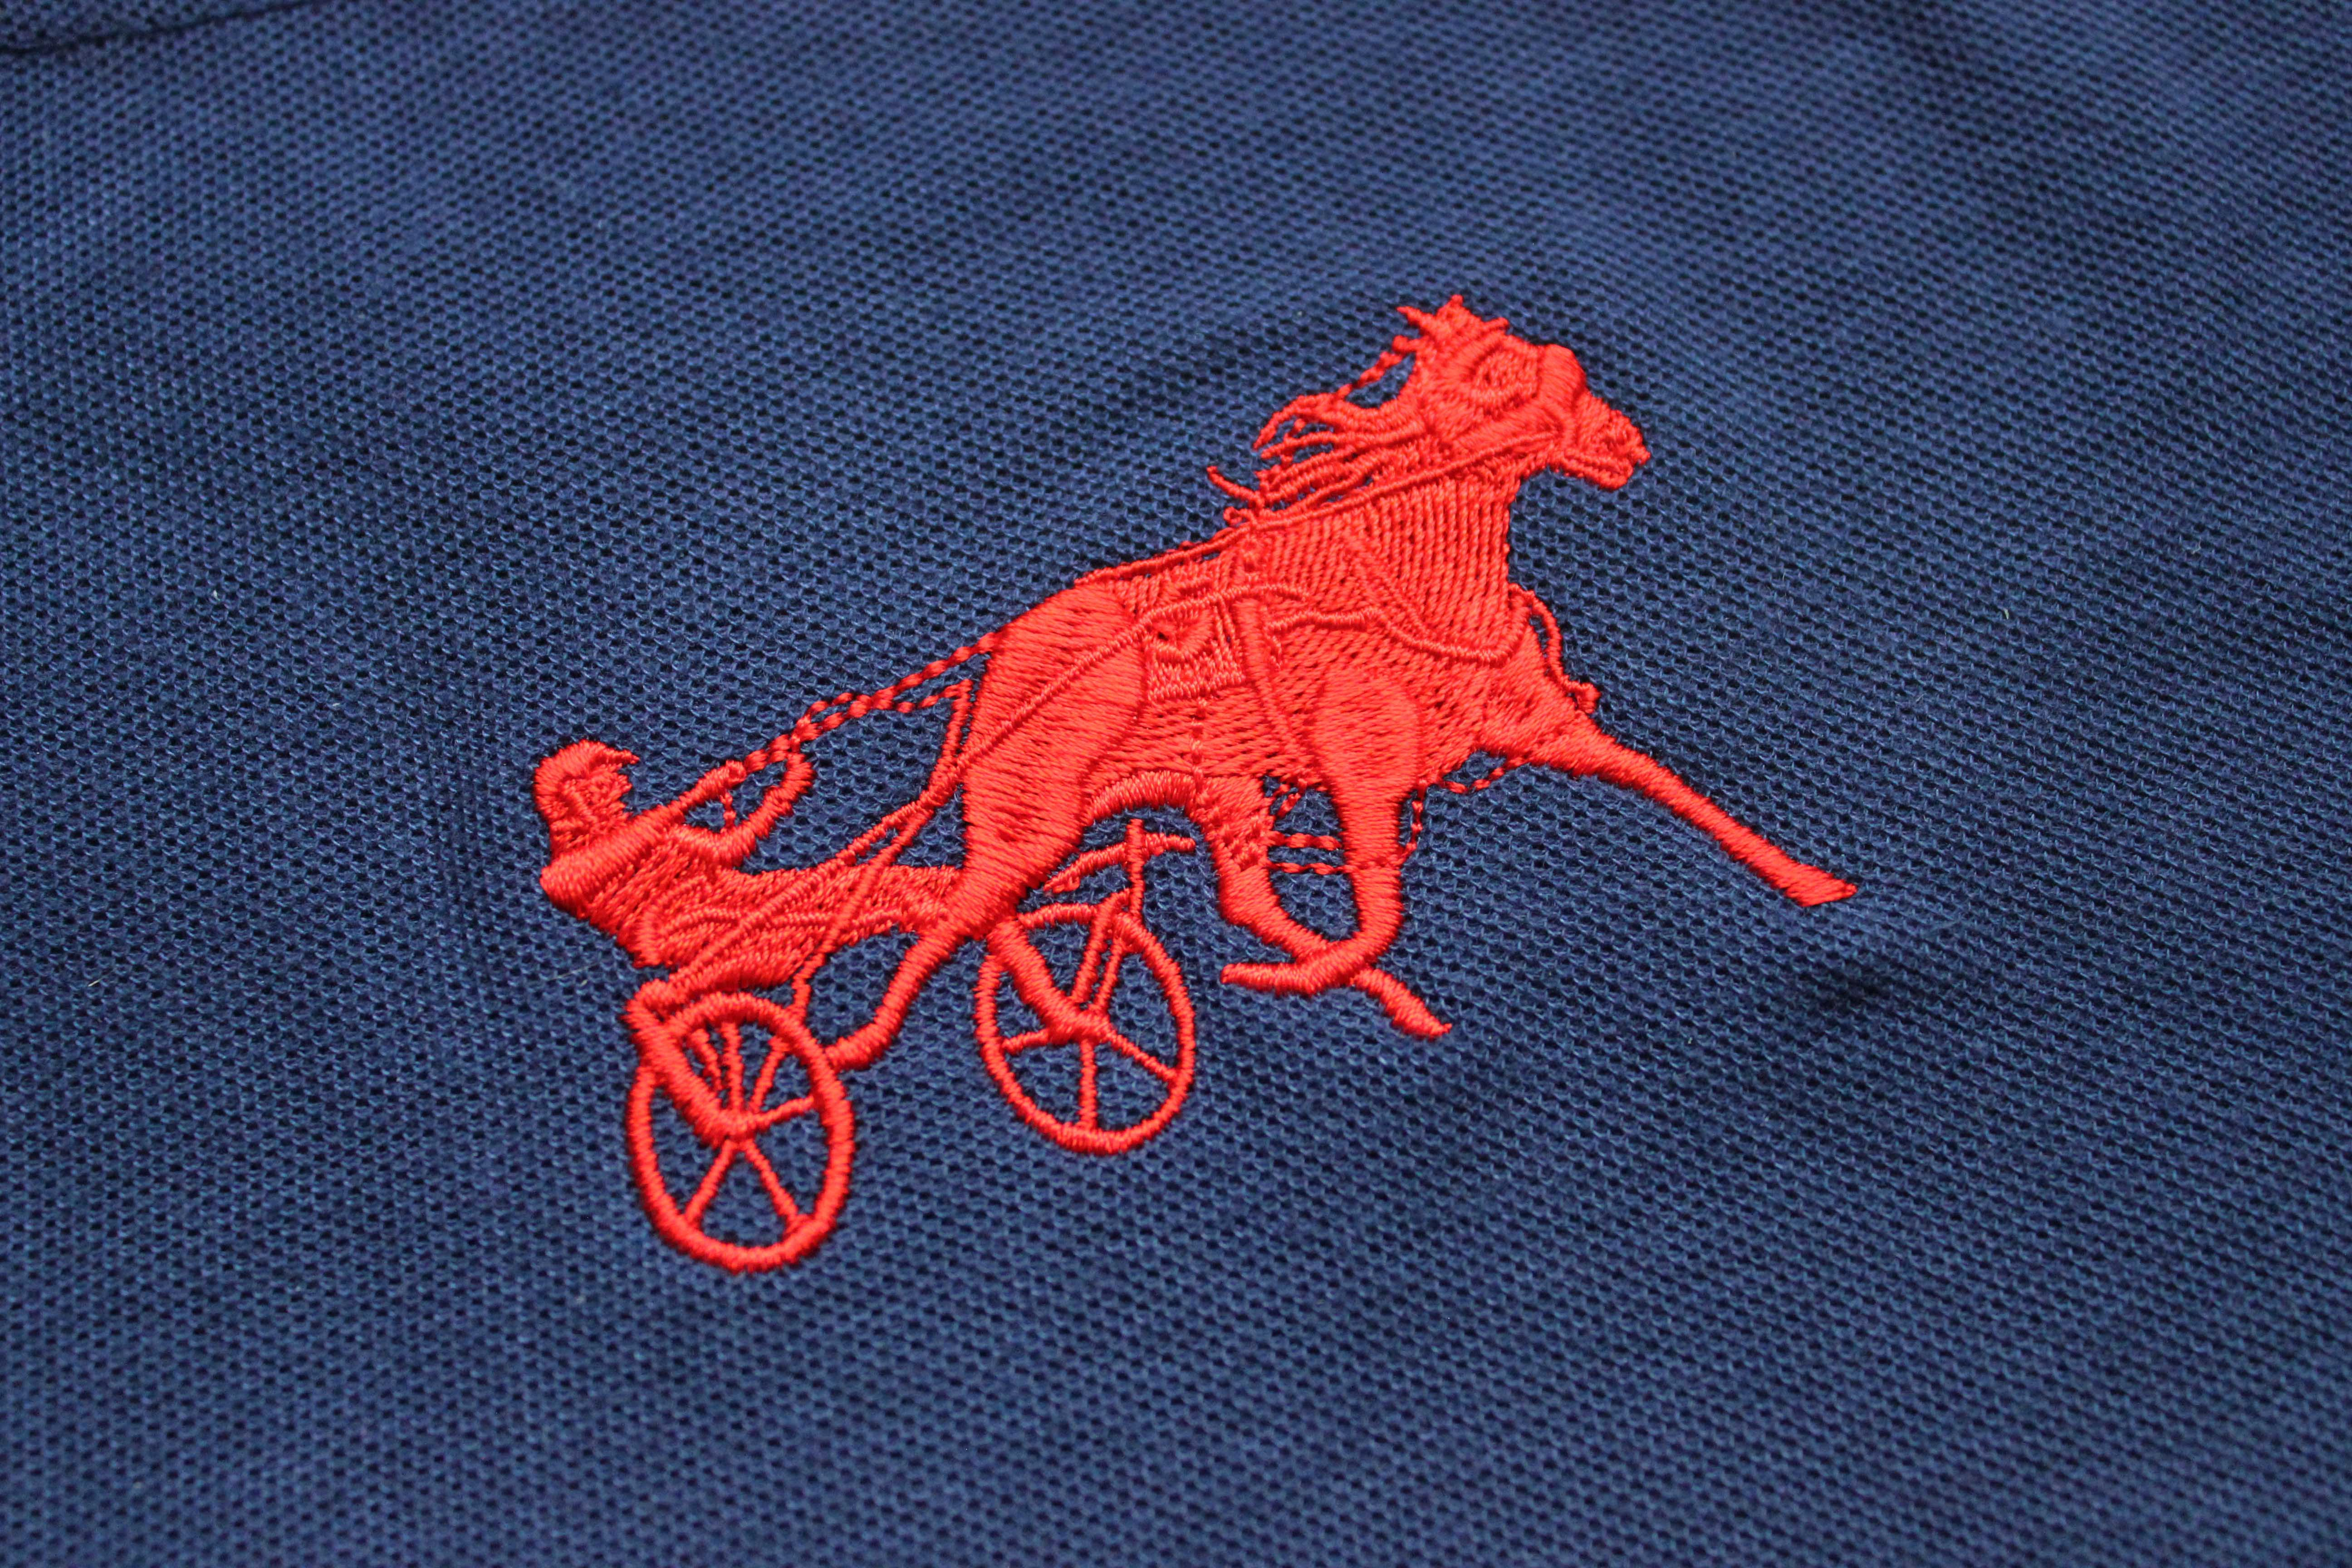 Equestrian Horse Logo Embroidery